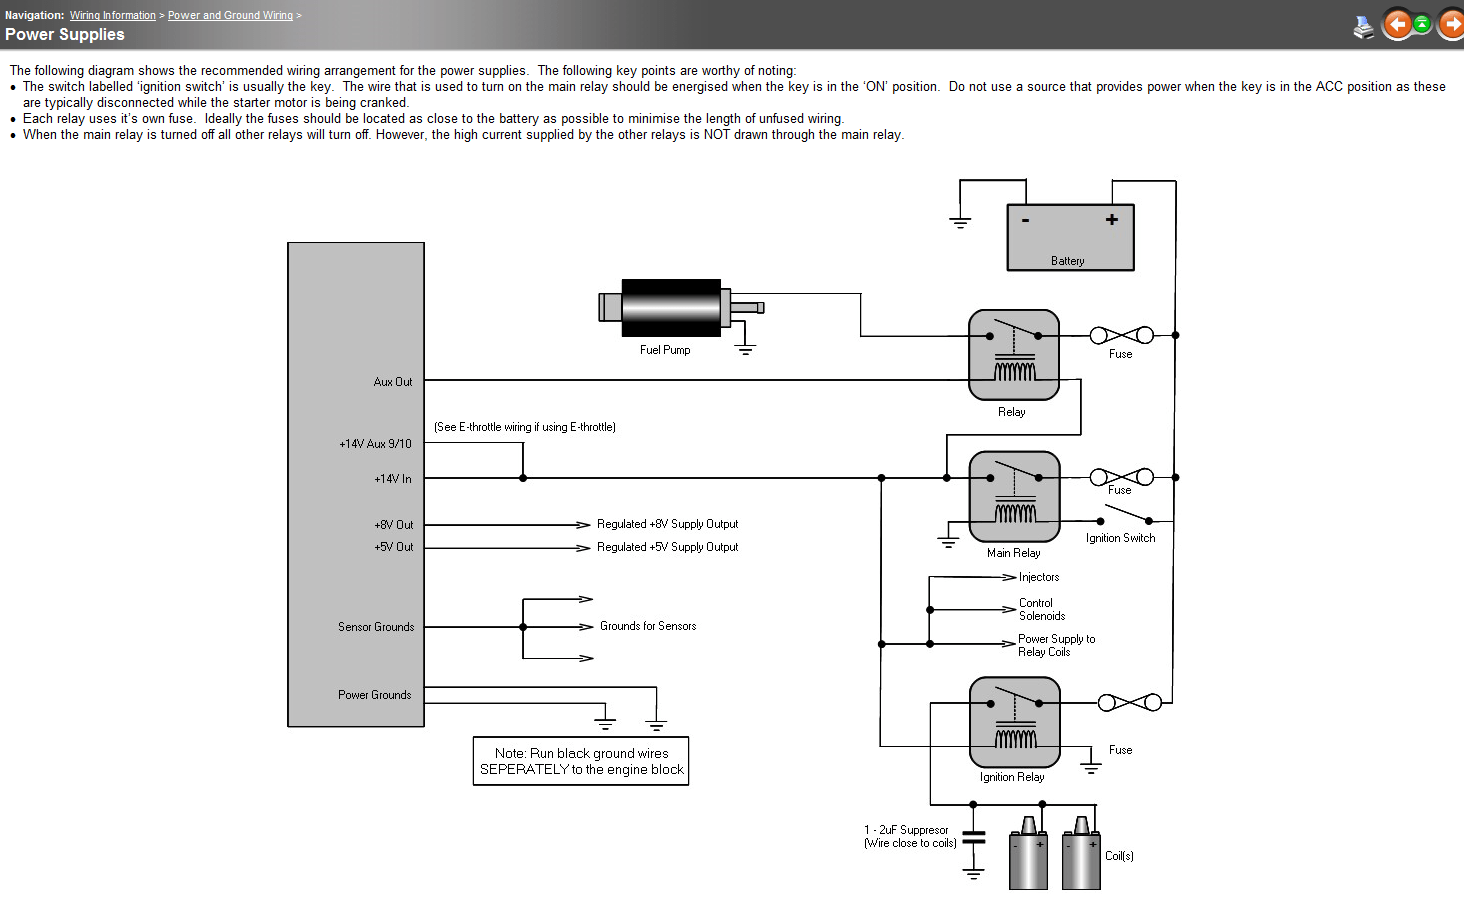 hight resolution of power supplies thumb png 0264050ac6fe3c8